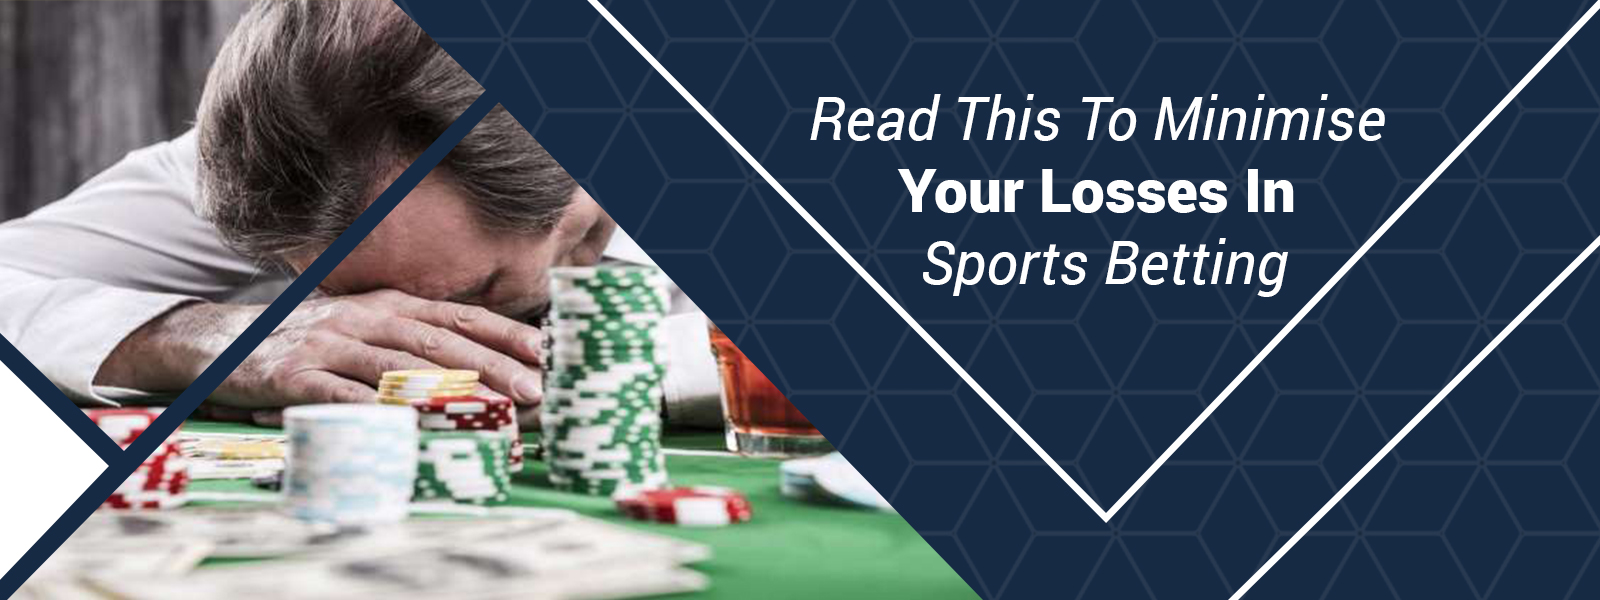 Read This To Minimise Your Losses In Sports Betting